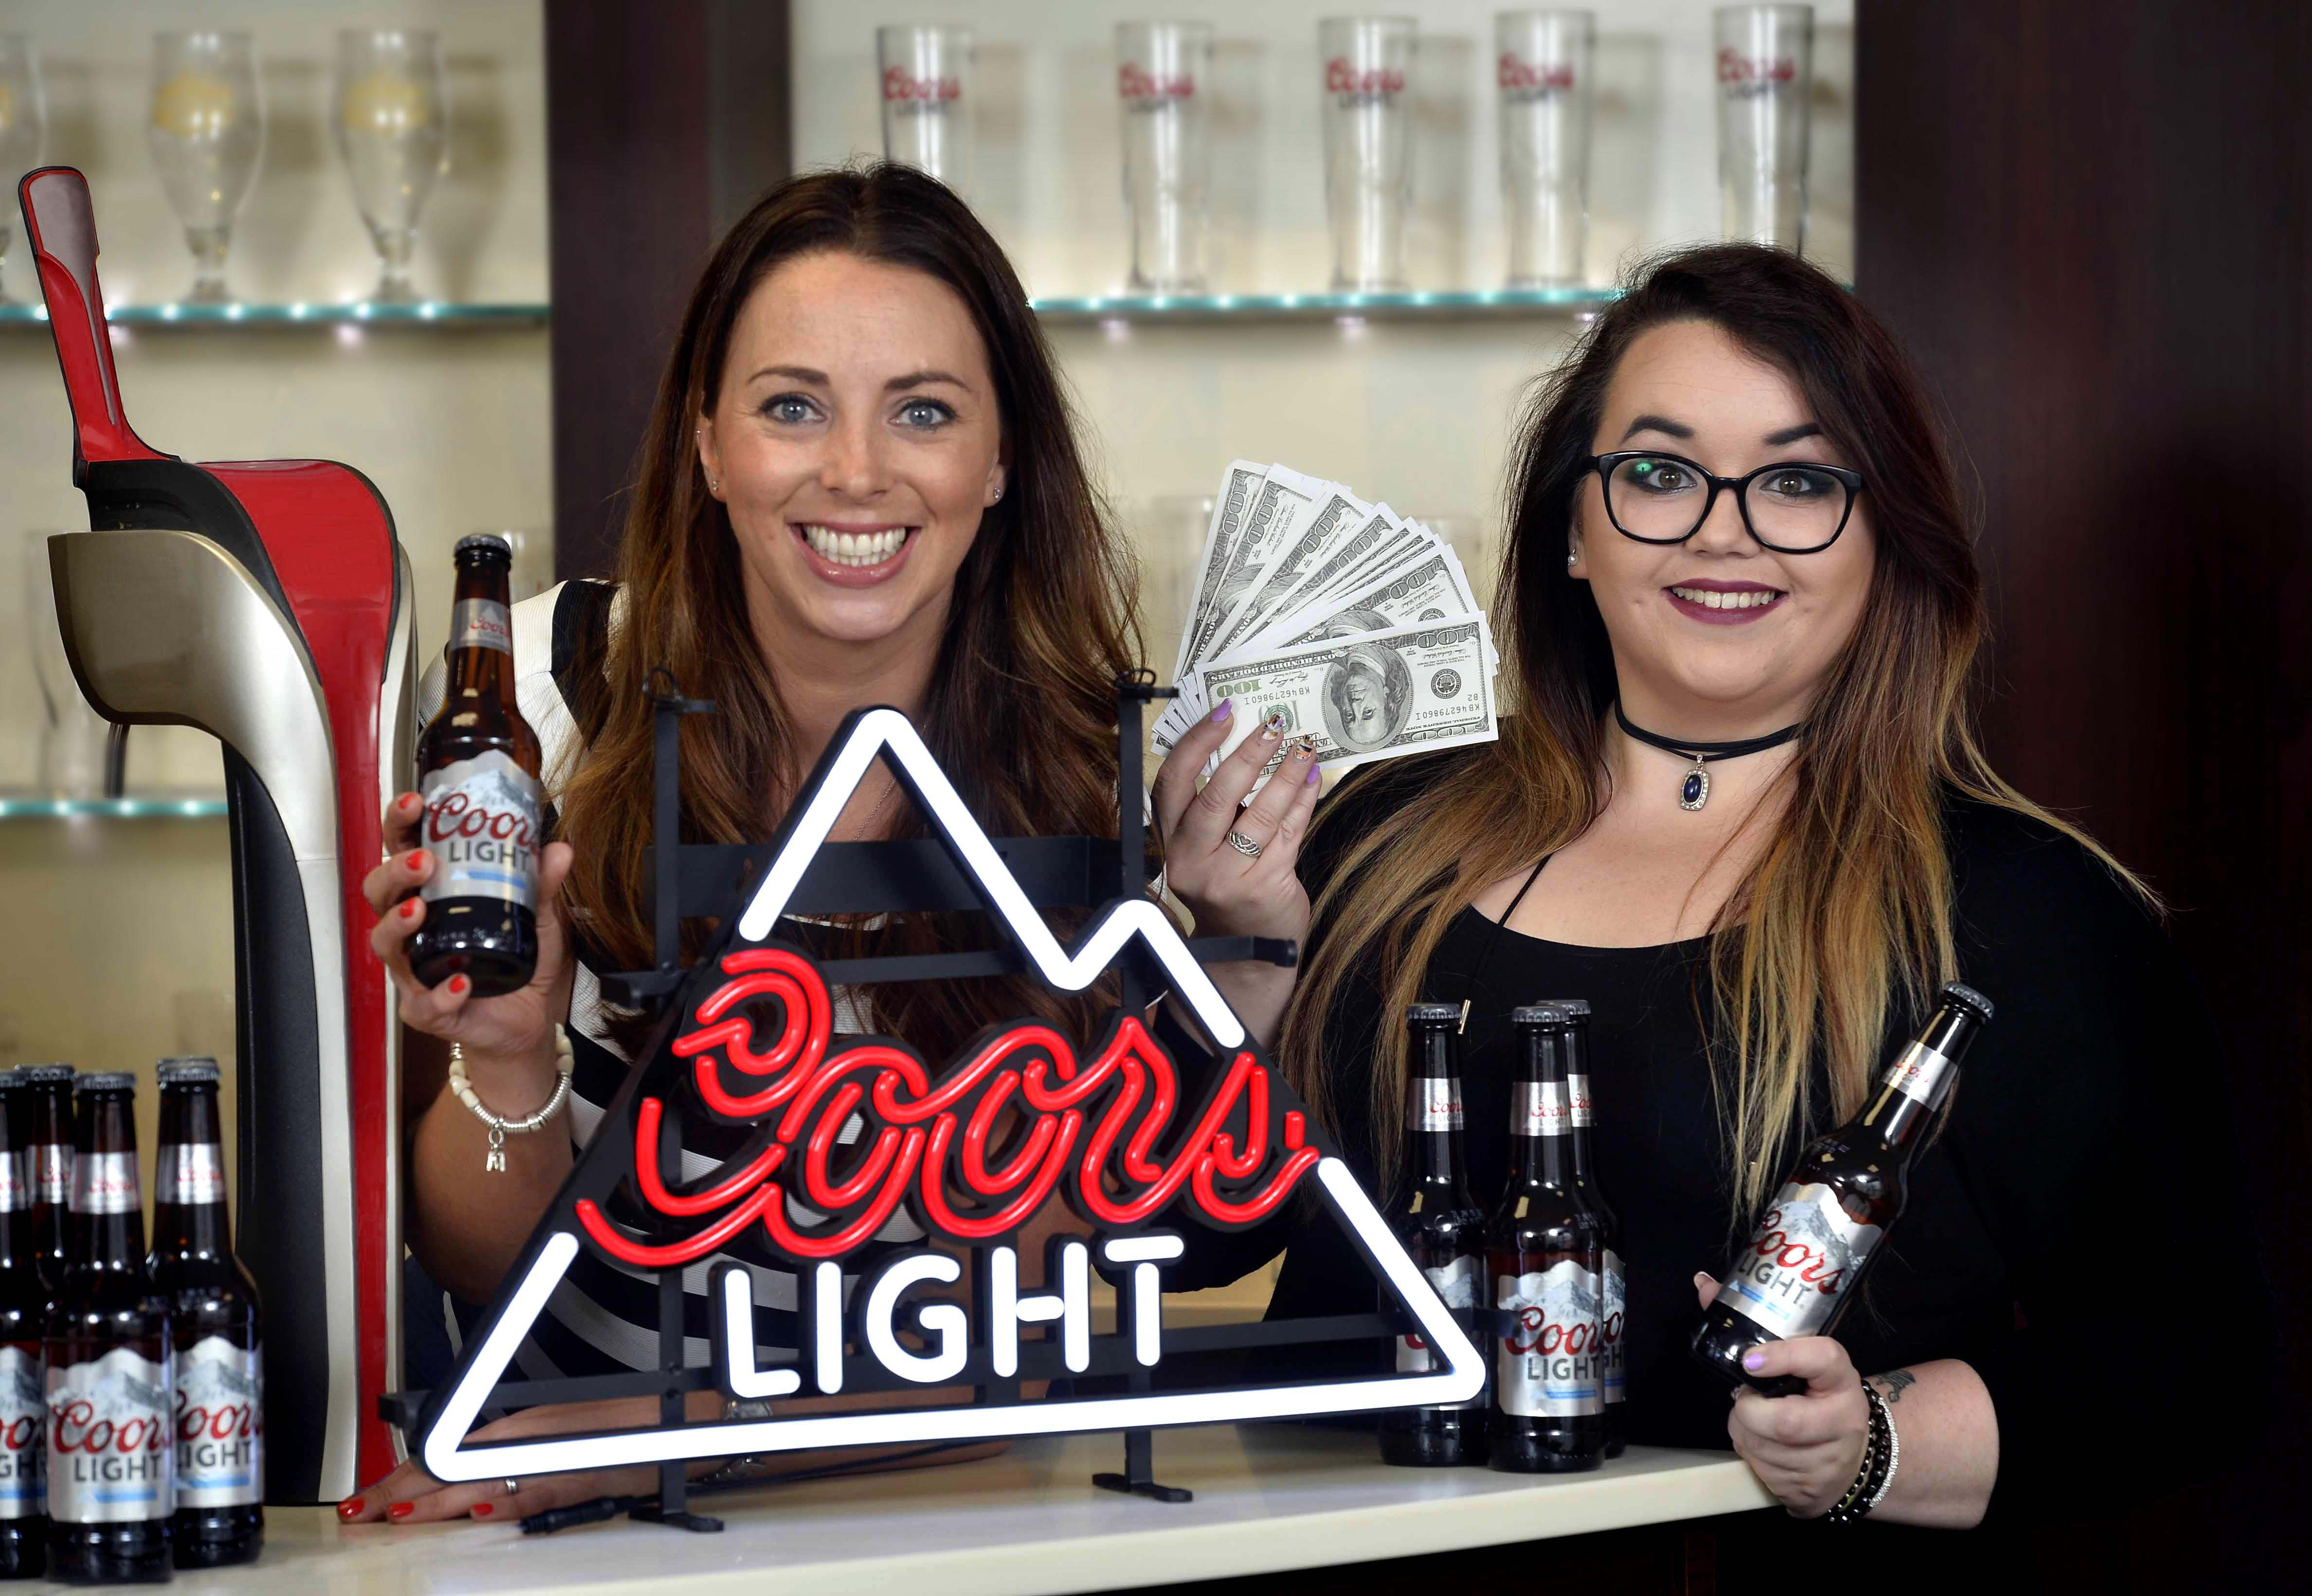 ROAD TRIP: NI photographer, Danielle Whitehouse (r), celebrates with Molson Coors Customer Marketing Manager, Denise Catney, after winning a massive £10,000 competition organised by Coors Light. Danielle was chosen from thousands of entrants who were asked to share what was on their wish list of dream experiences for a chance to turn that dream into a reality. Armed with a £10,000 prize fund, courtesy of Coors Light, Danielle is planning on taking a road trip across the USA in a yellow Chevrolet and stopping at each state on the way to meet the locals and soak up the American culture.